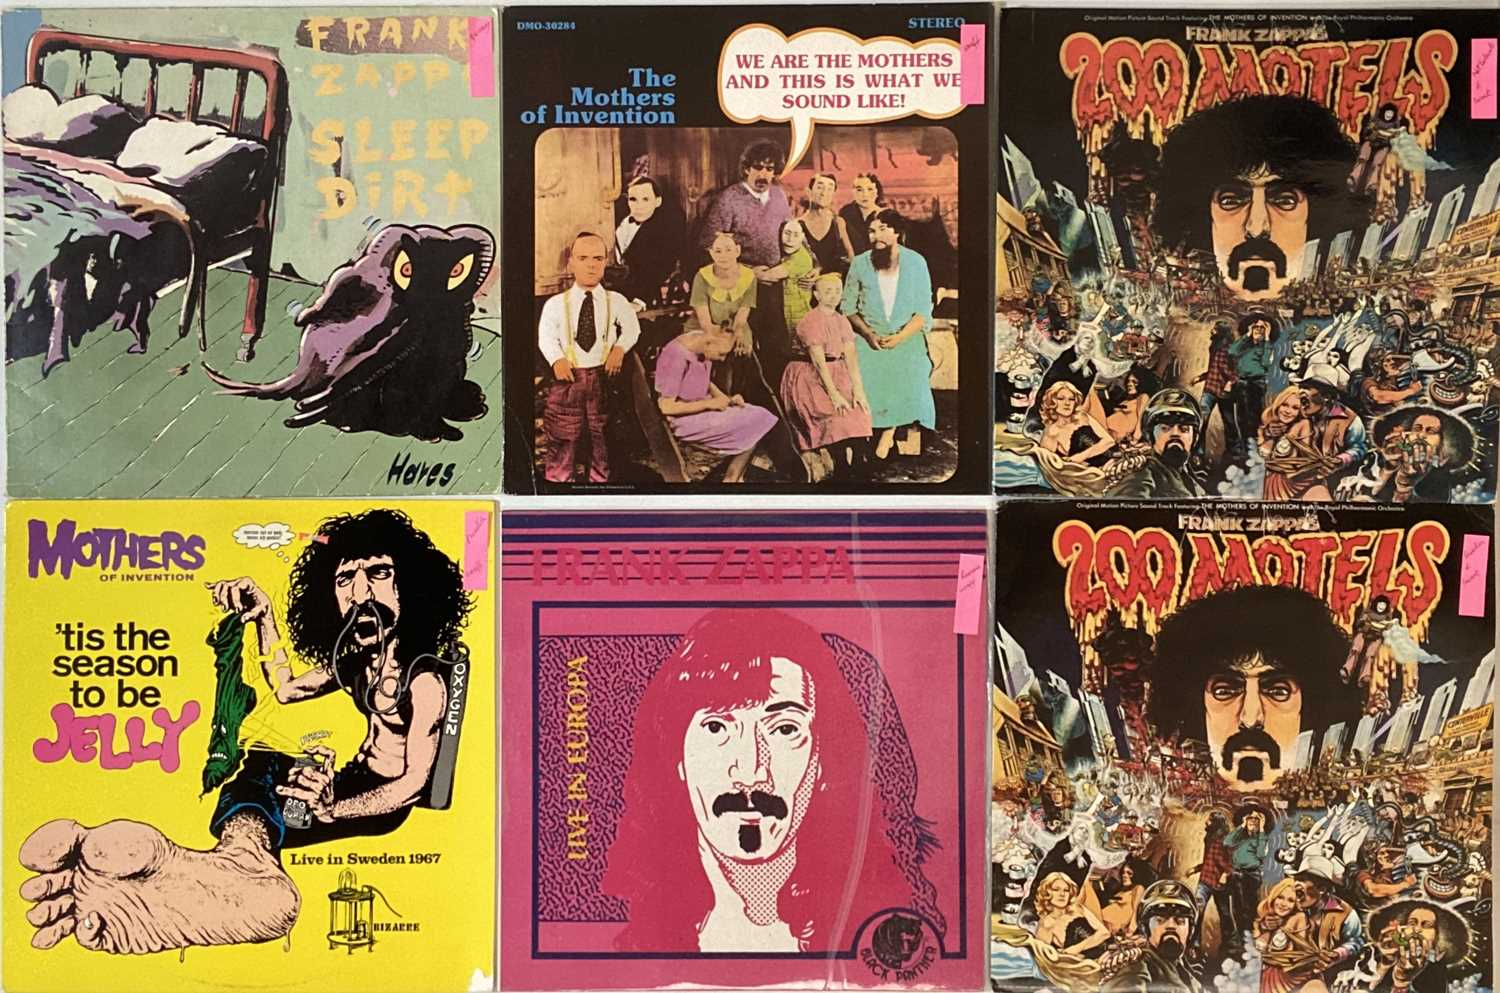 """FRANK ZAPPA - OVERSEAS/PRIVATE PRESSING LPs/7"""" - Image 2 of 4"""